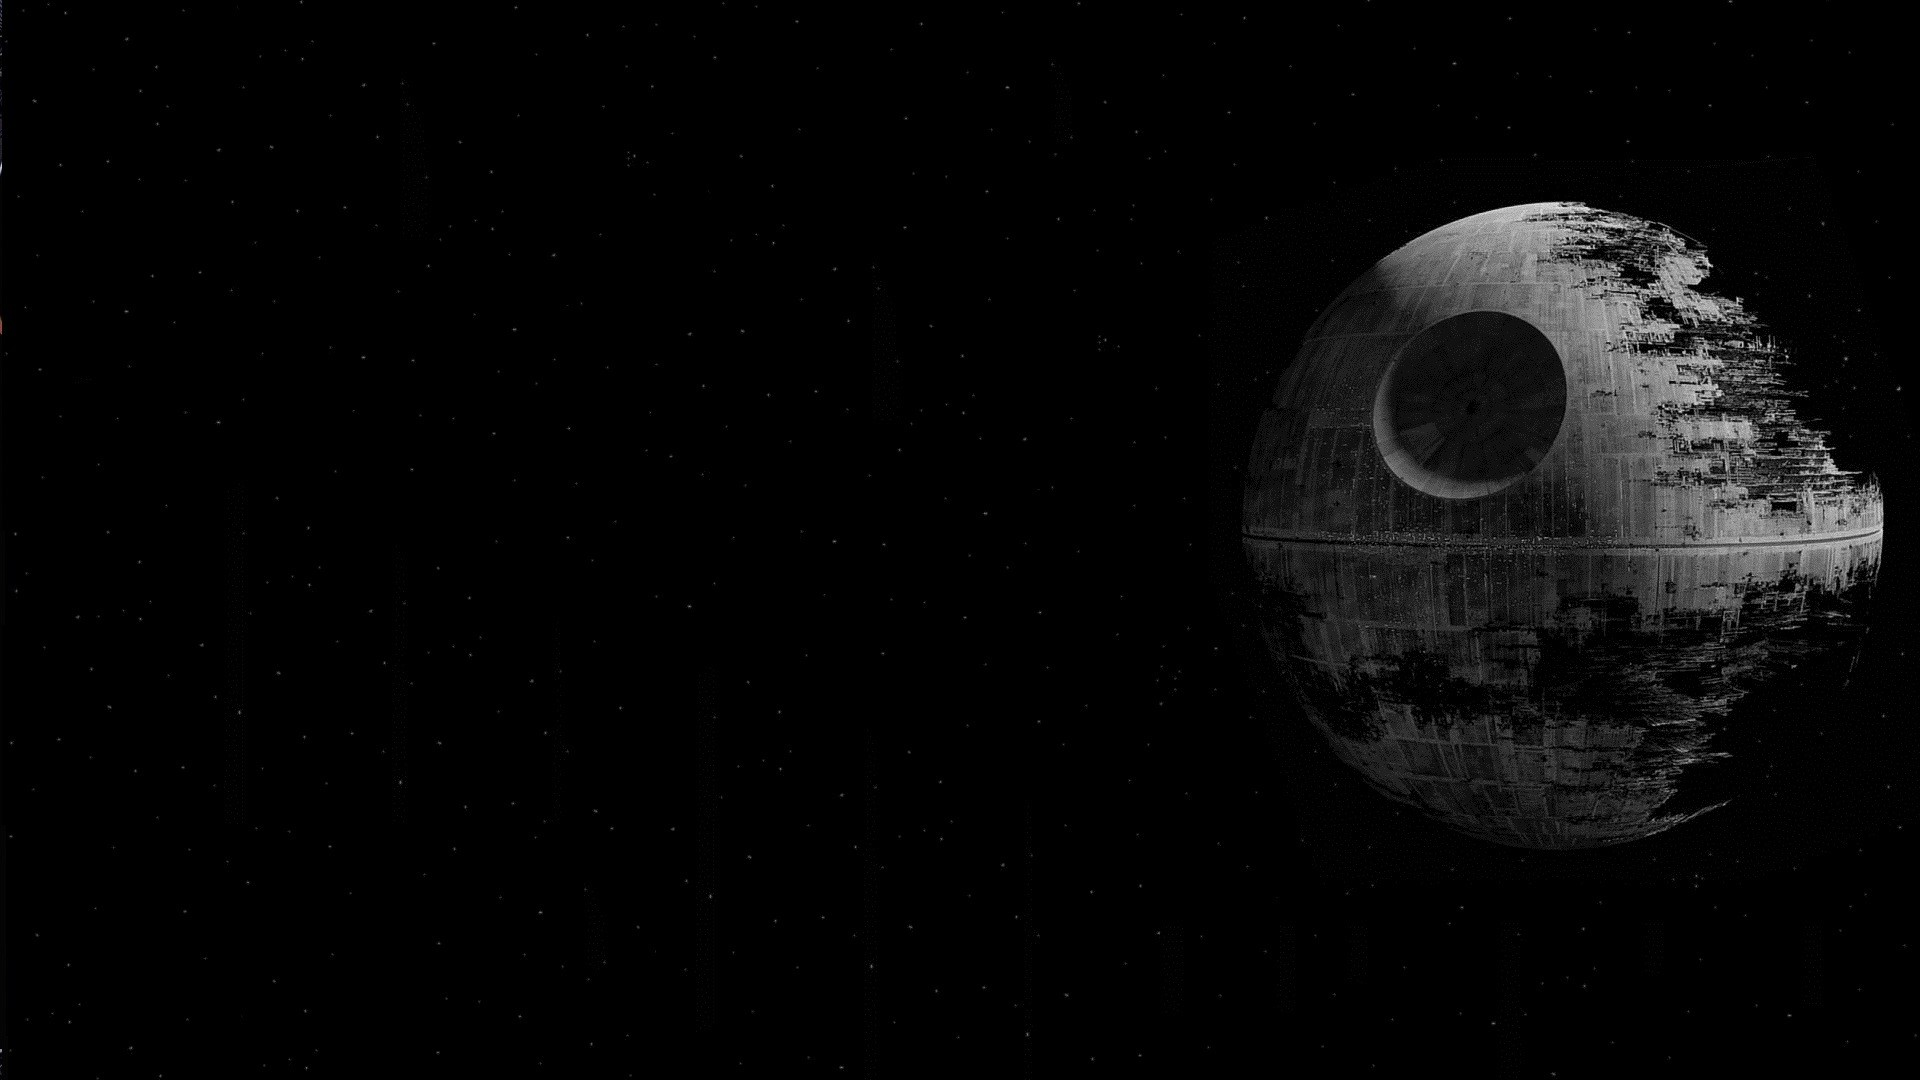 Dual Monitor Star Wars Wallpaper Picture